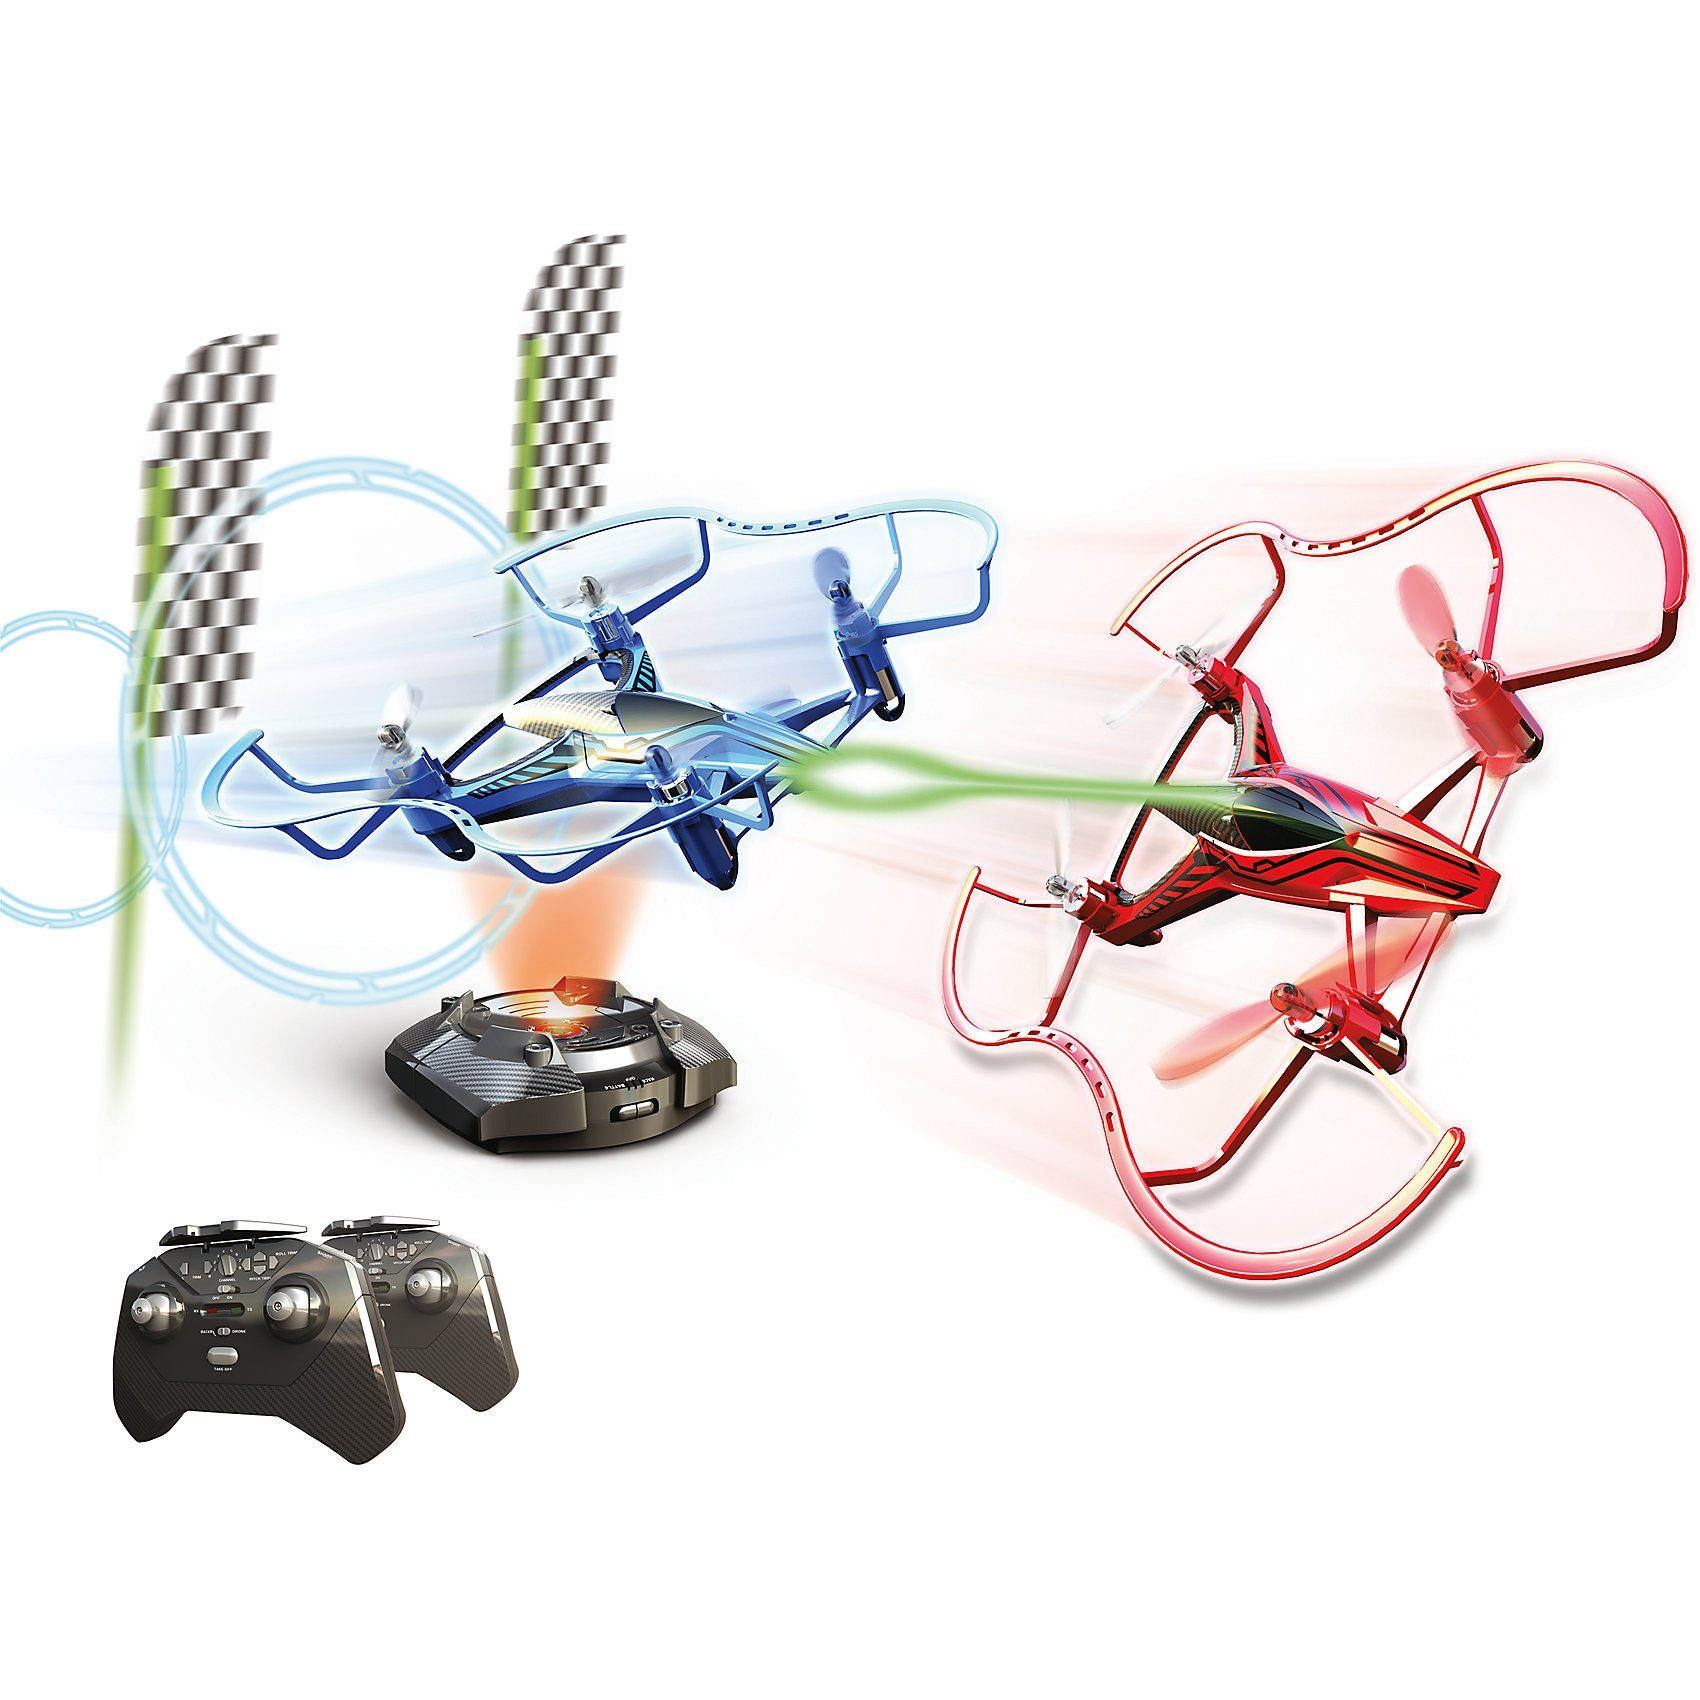 Silverlit RC Renndrohne Quadrocopter Hyperdrone Champion's Kit